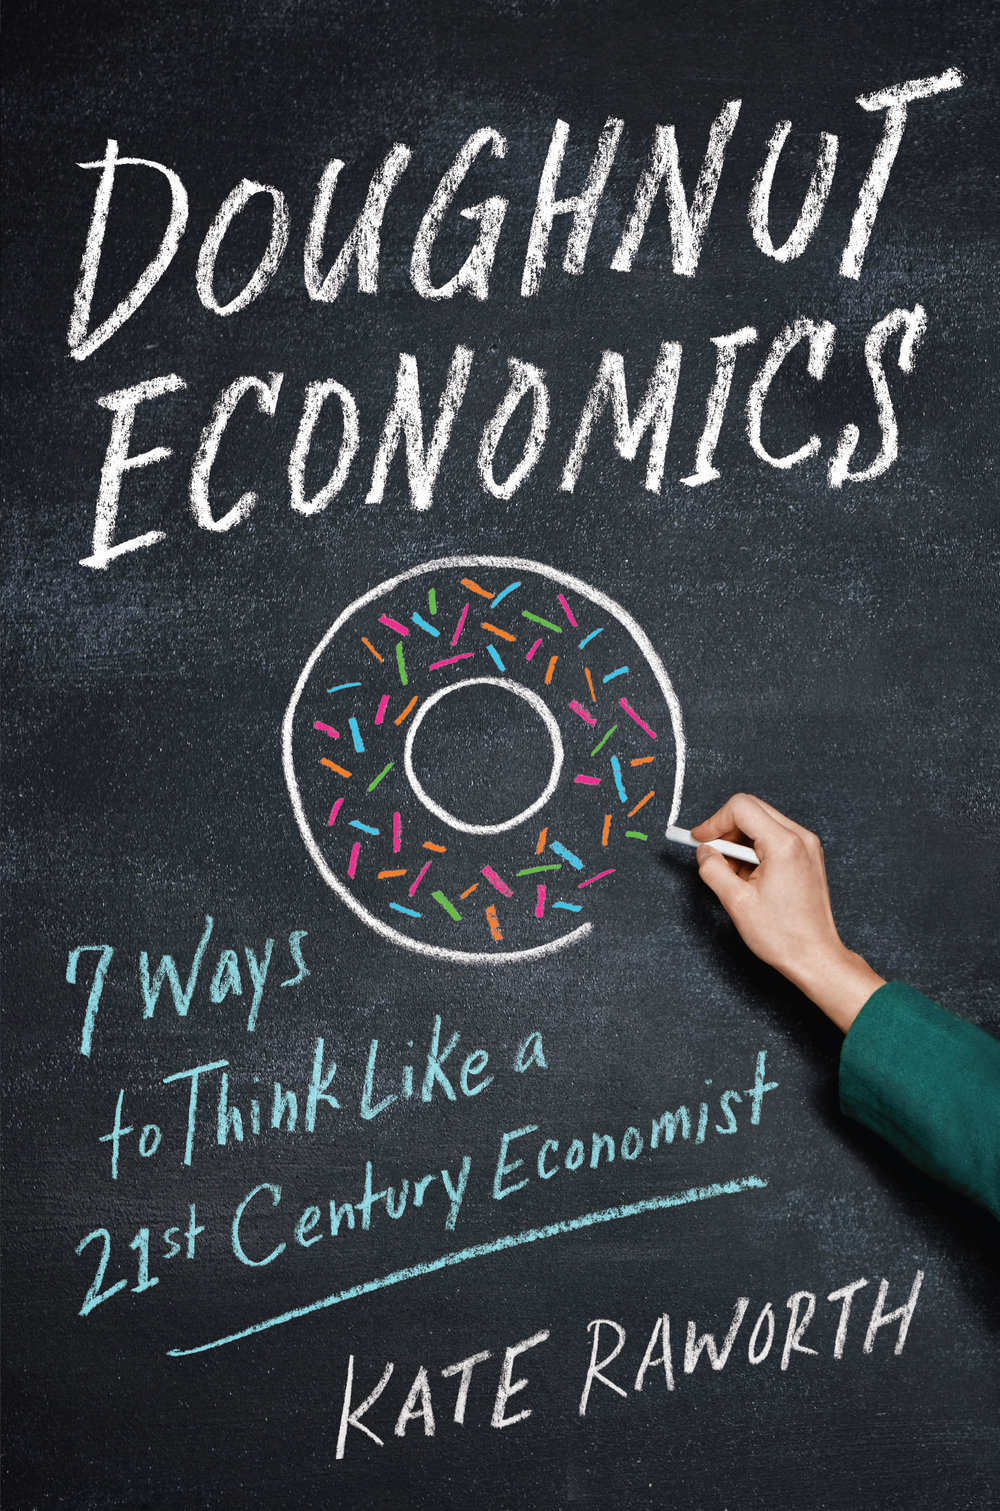 Doughnut Economics: Seven Ways to Think Like a 21st Century Economist, Karen Raworth